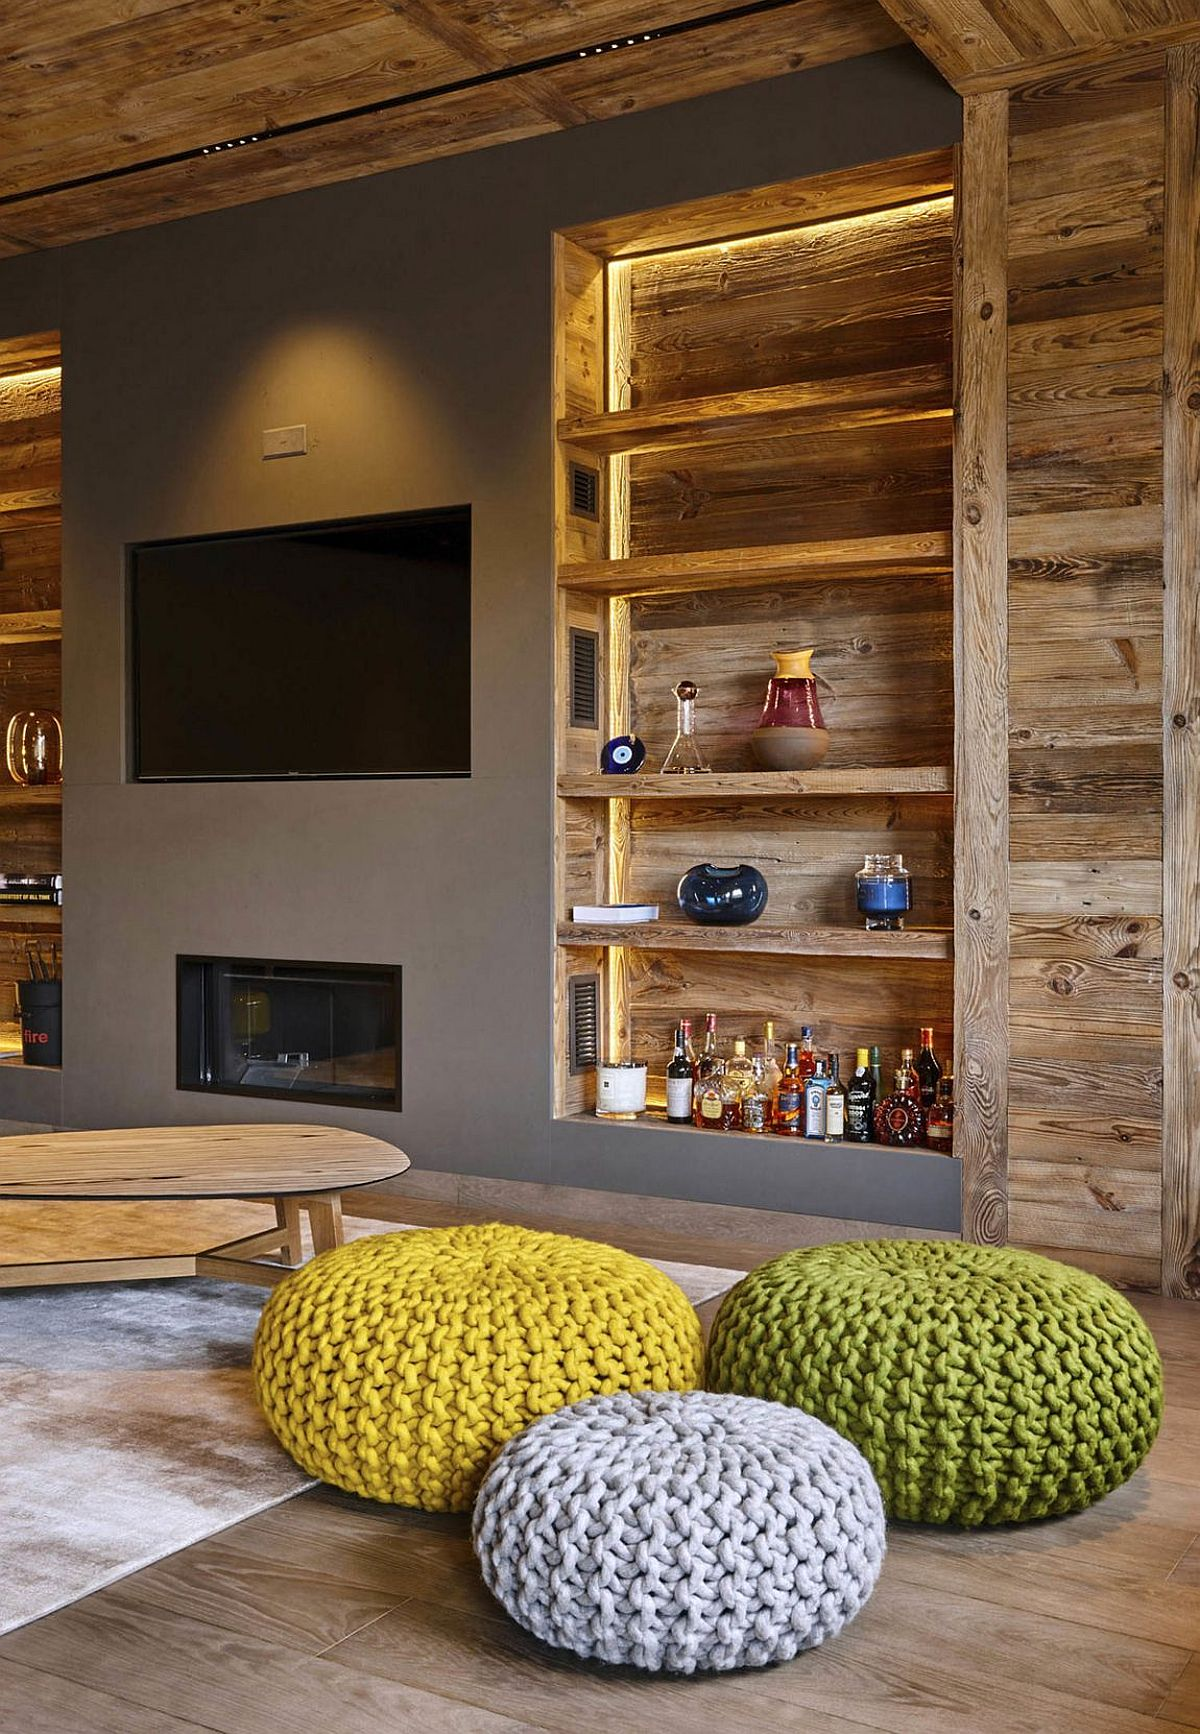 Open wooden shelves next to the TV wall in gray with fireplace below